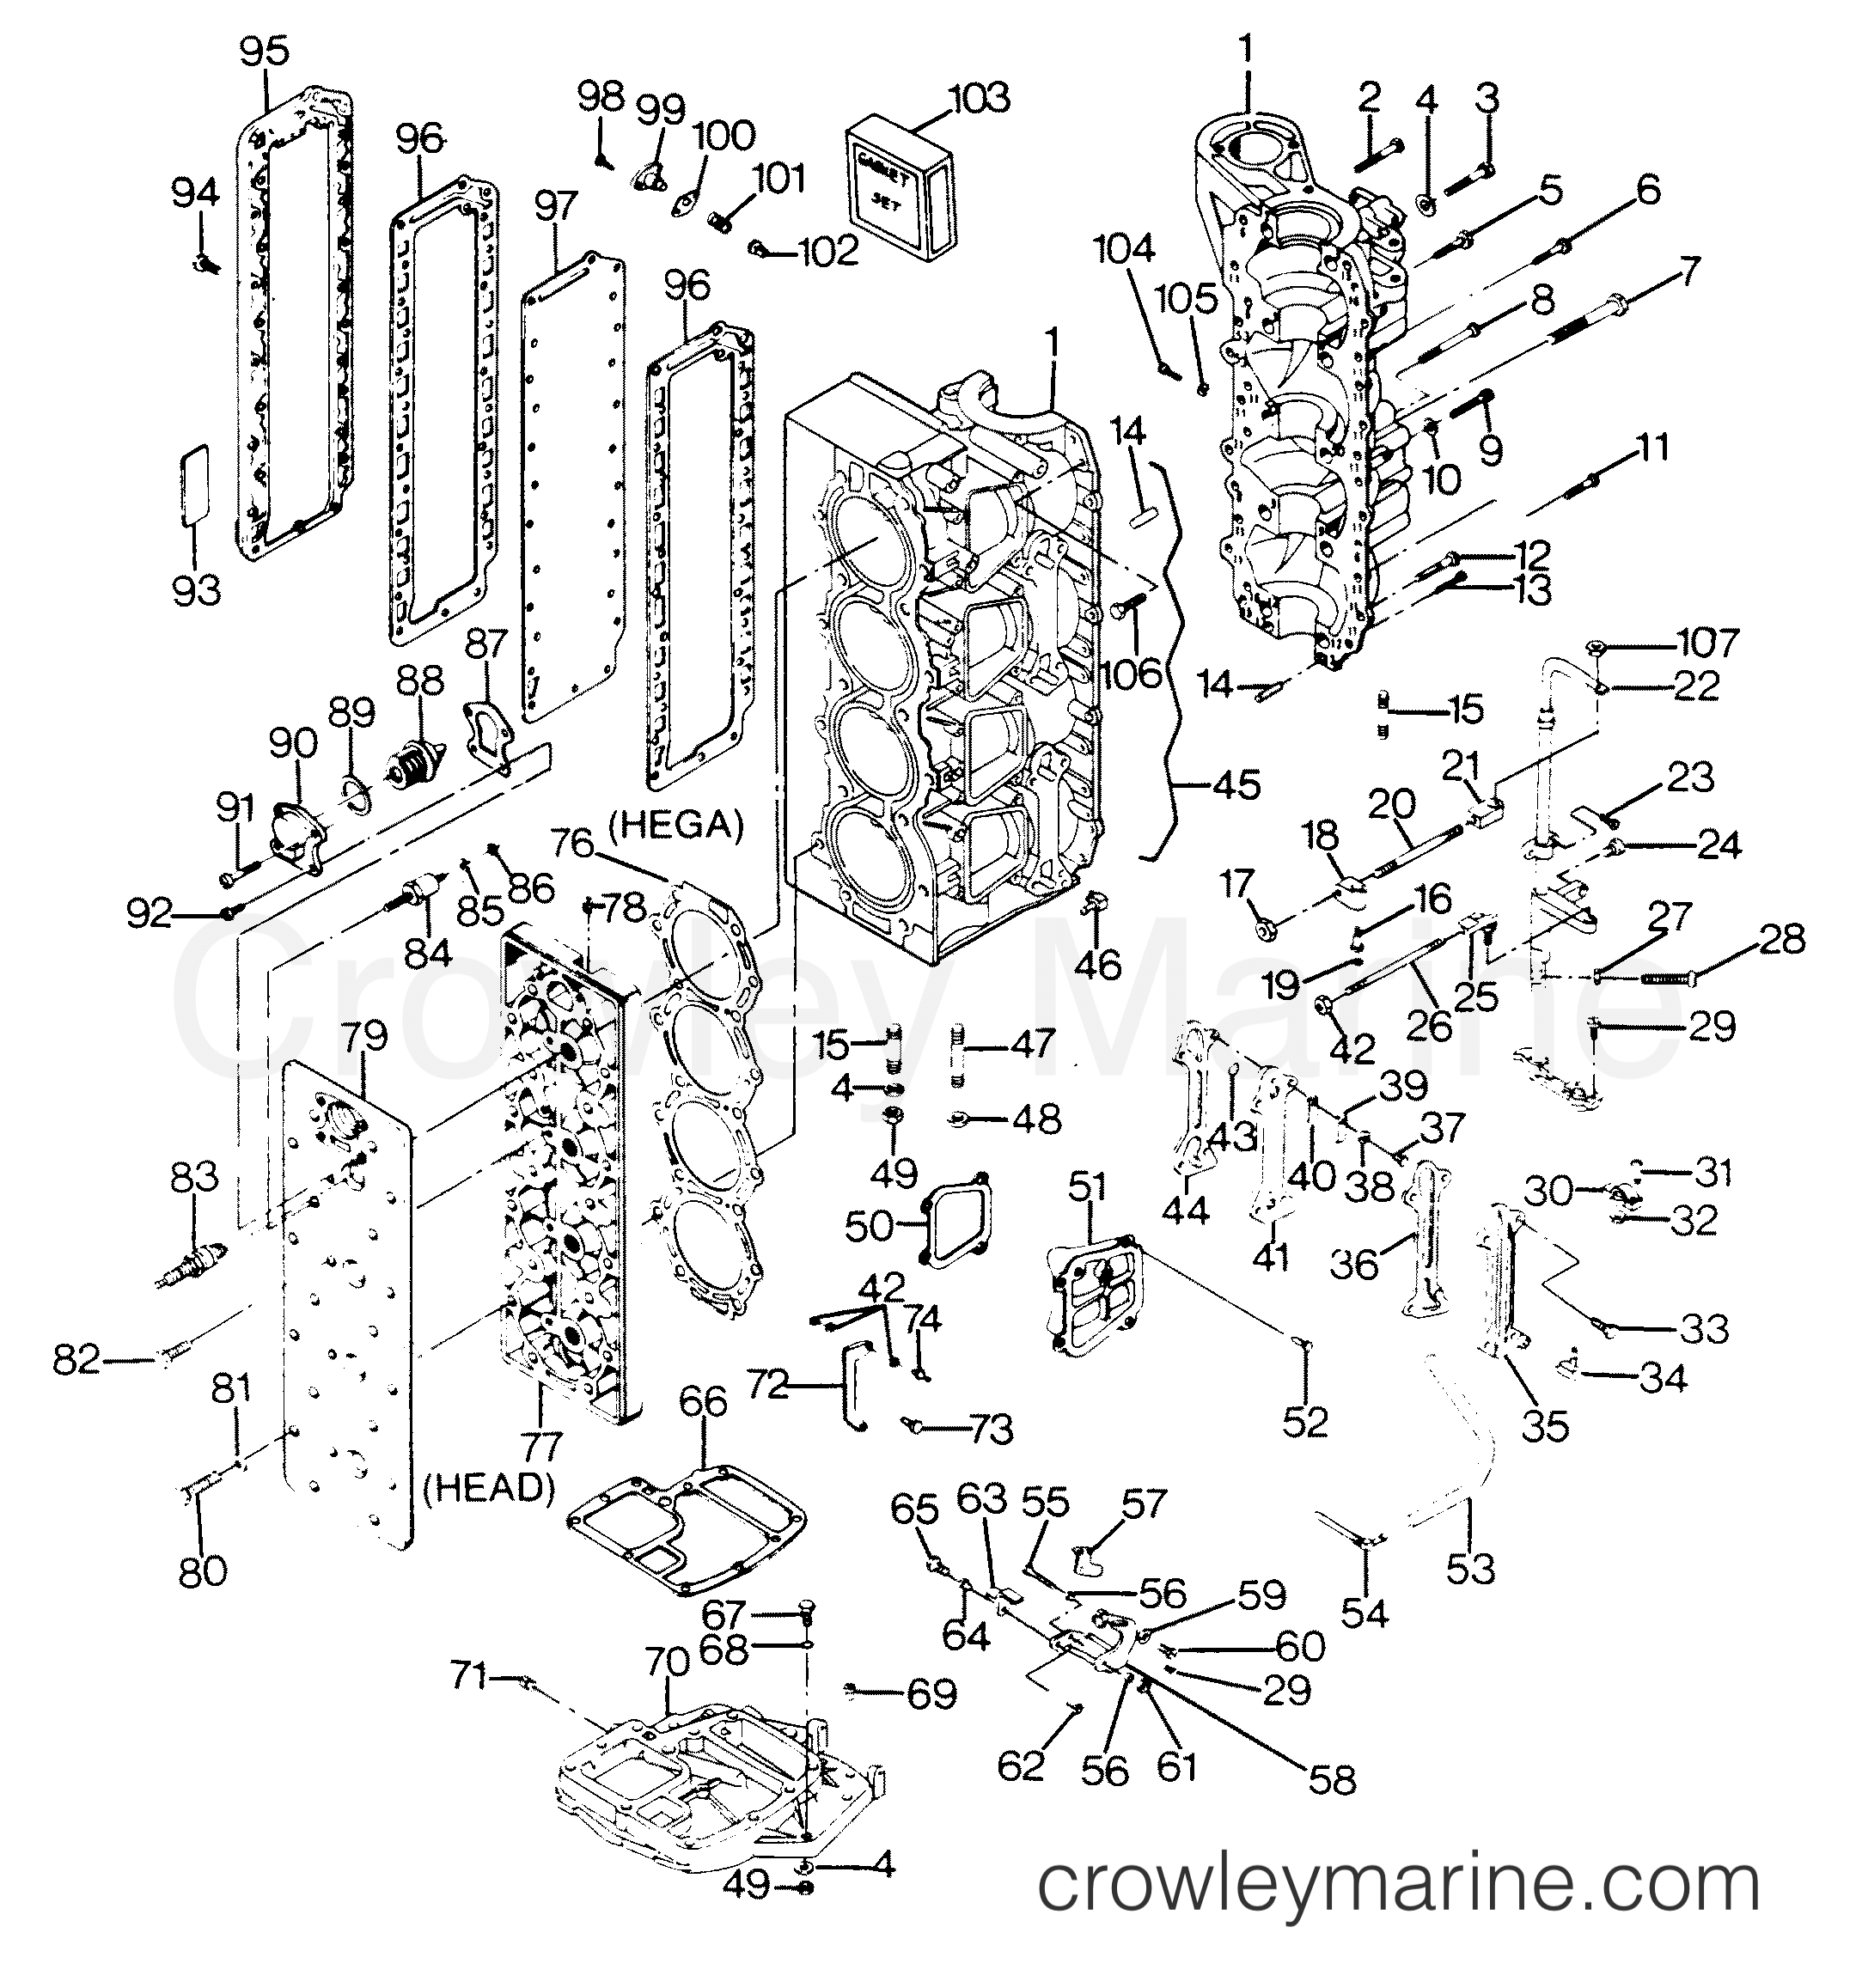 1988 mercury outboard controls wiring diagram